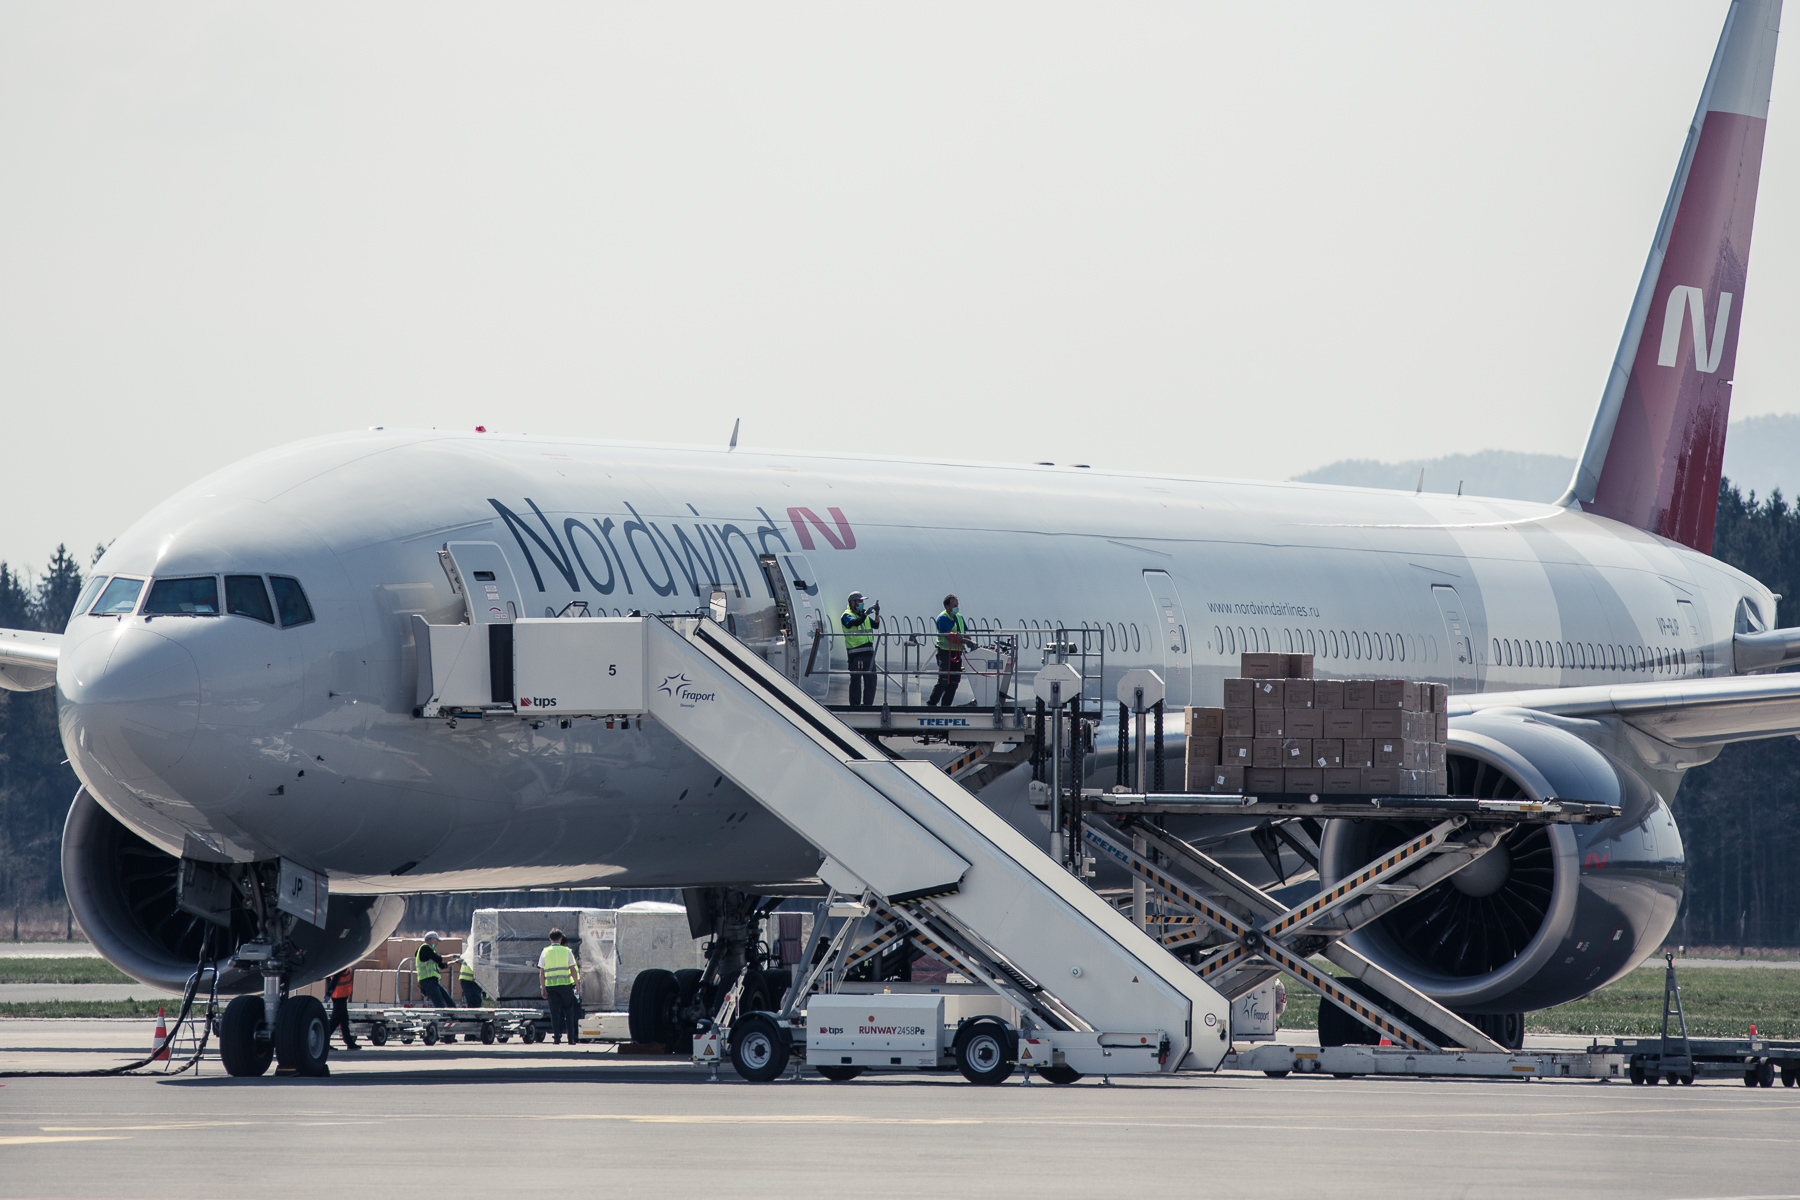 A Nordwind Airlines Boeing 777 plane from China is unloaded with 40 tons of medical supplies at the Ljubljana Airport on April 11, 2020.